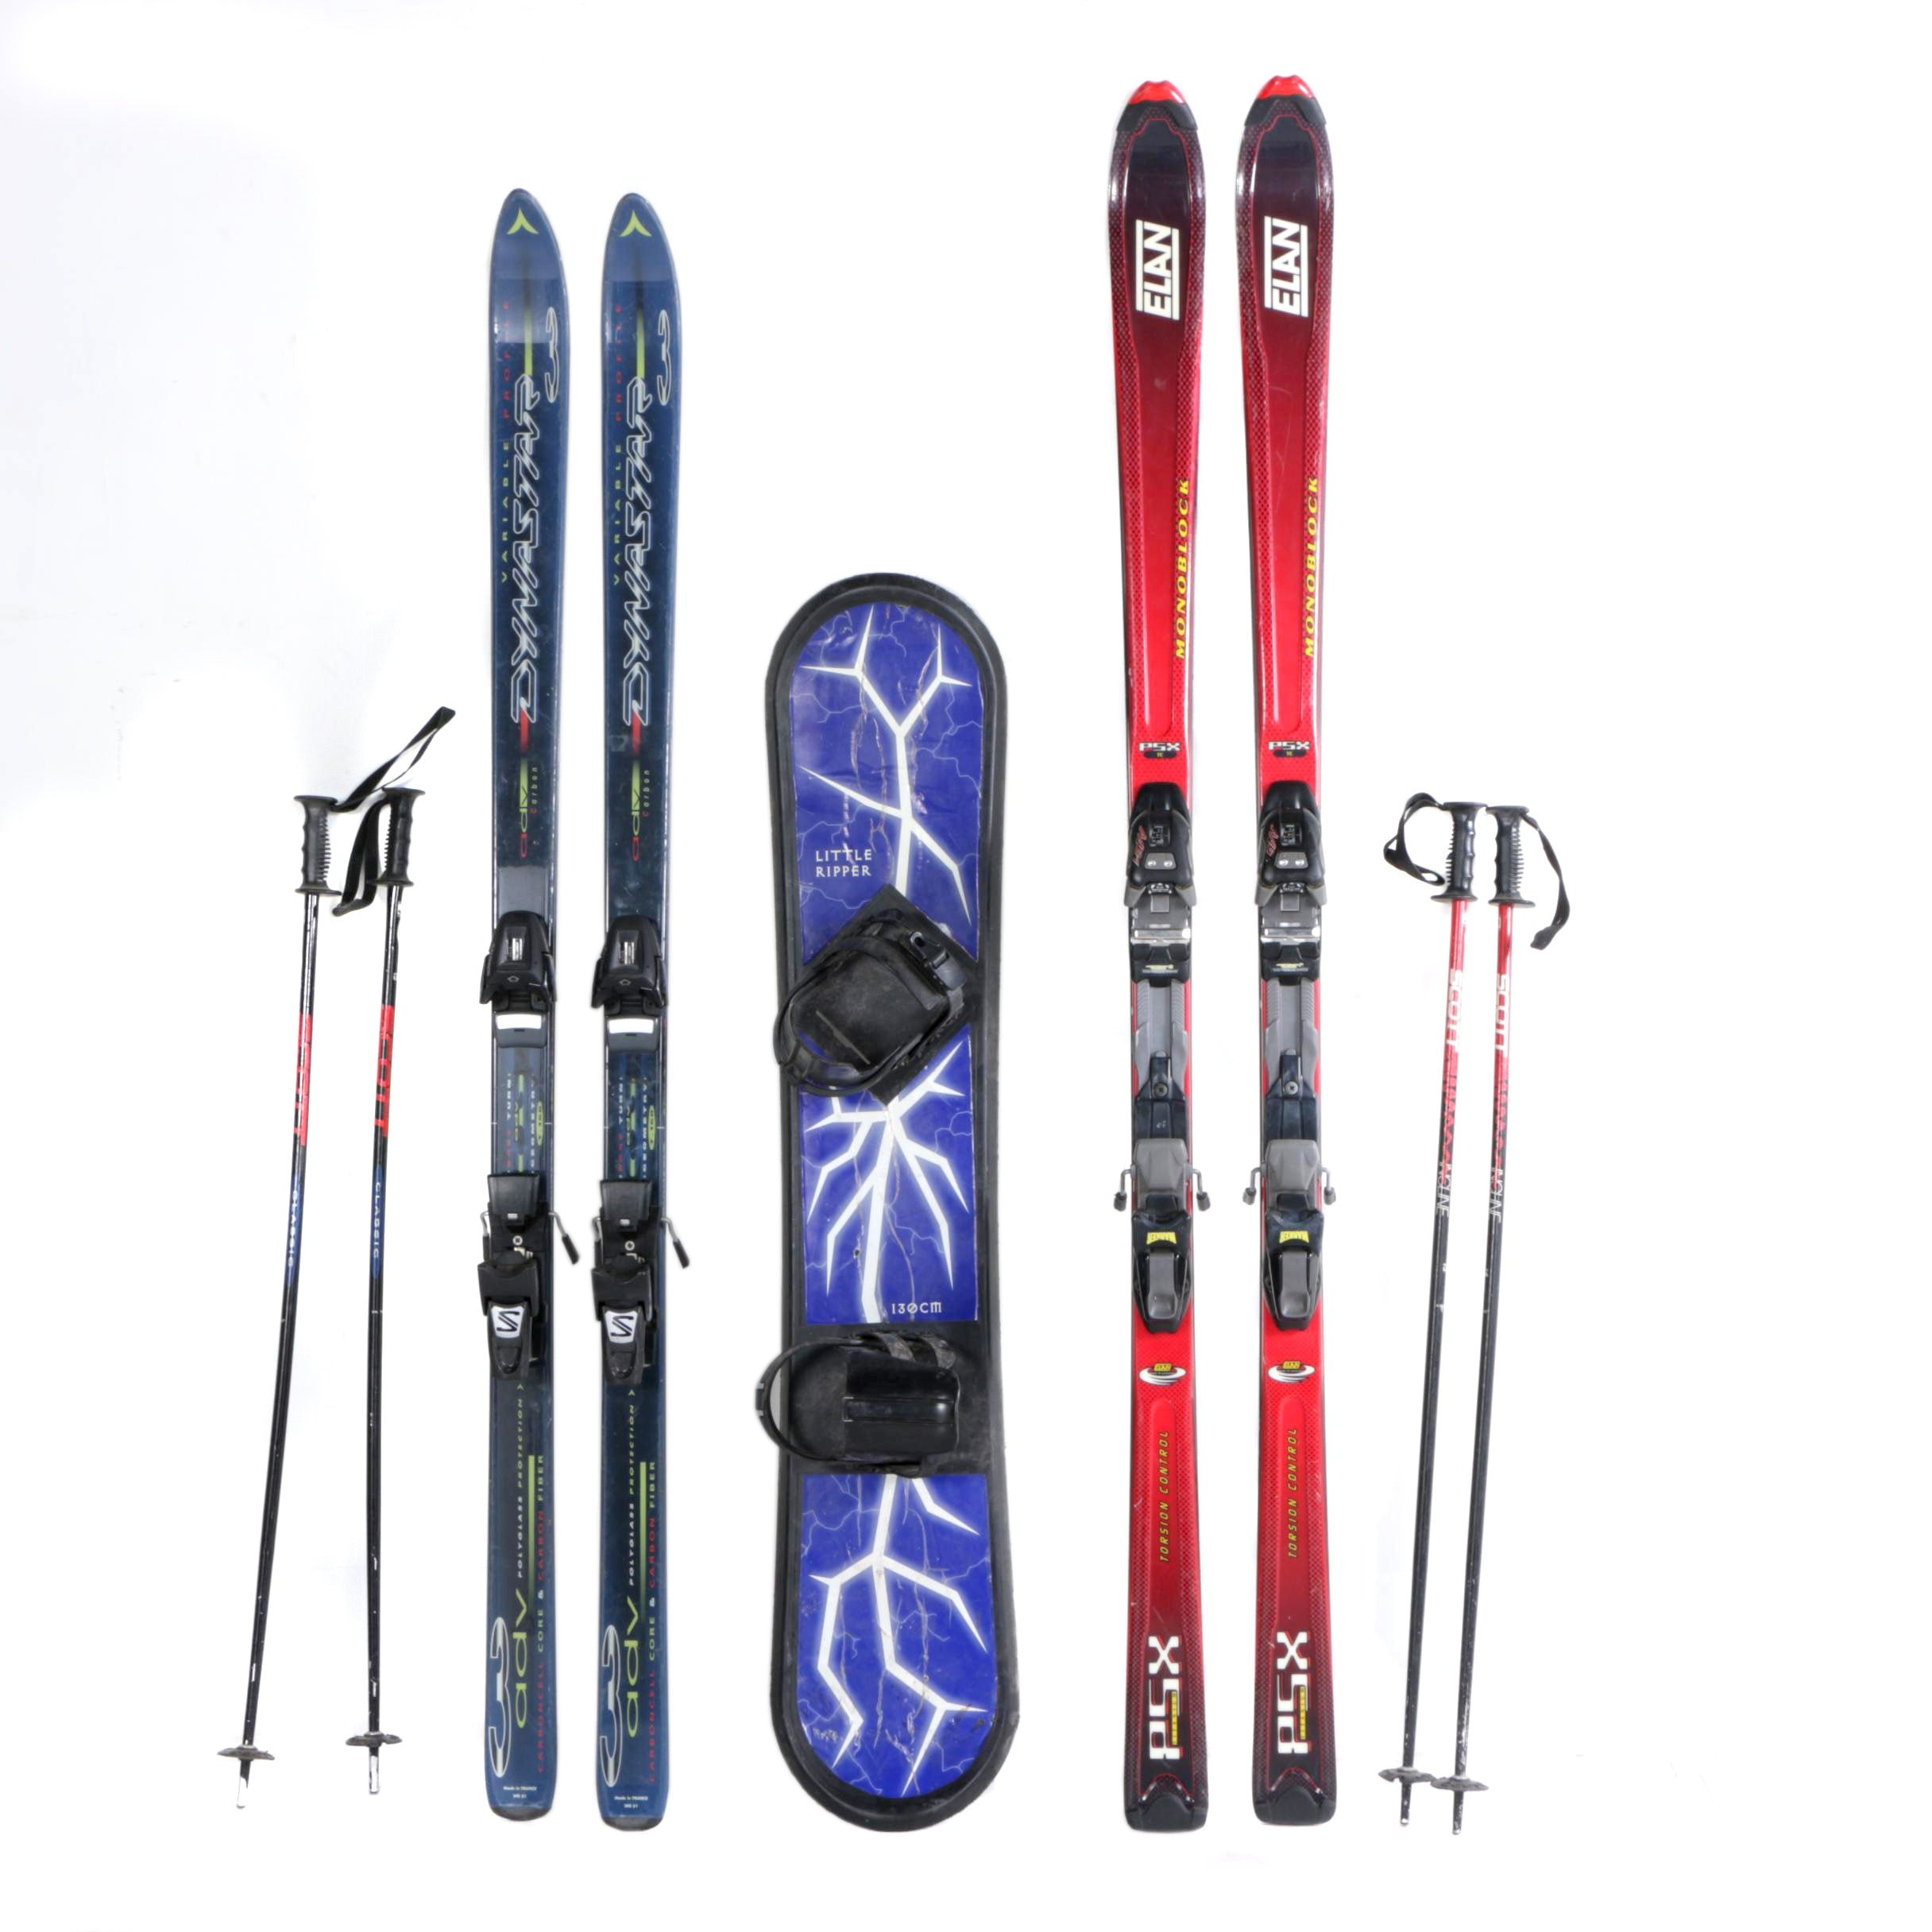 Dynastar and Elan Downhill Skis with Little Ripper Snowboard